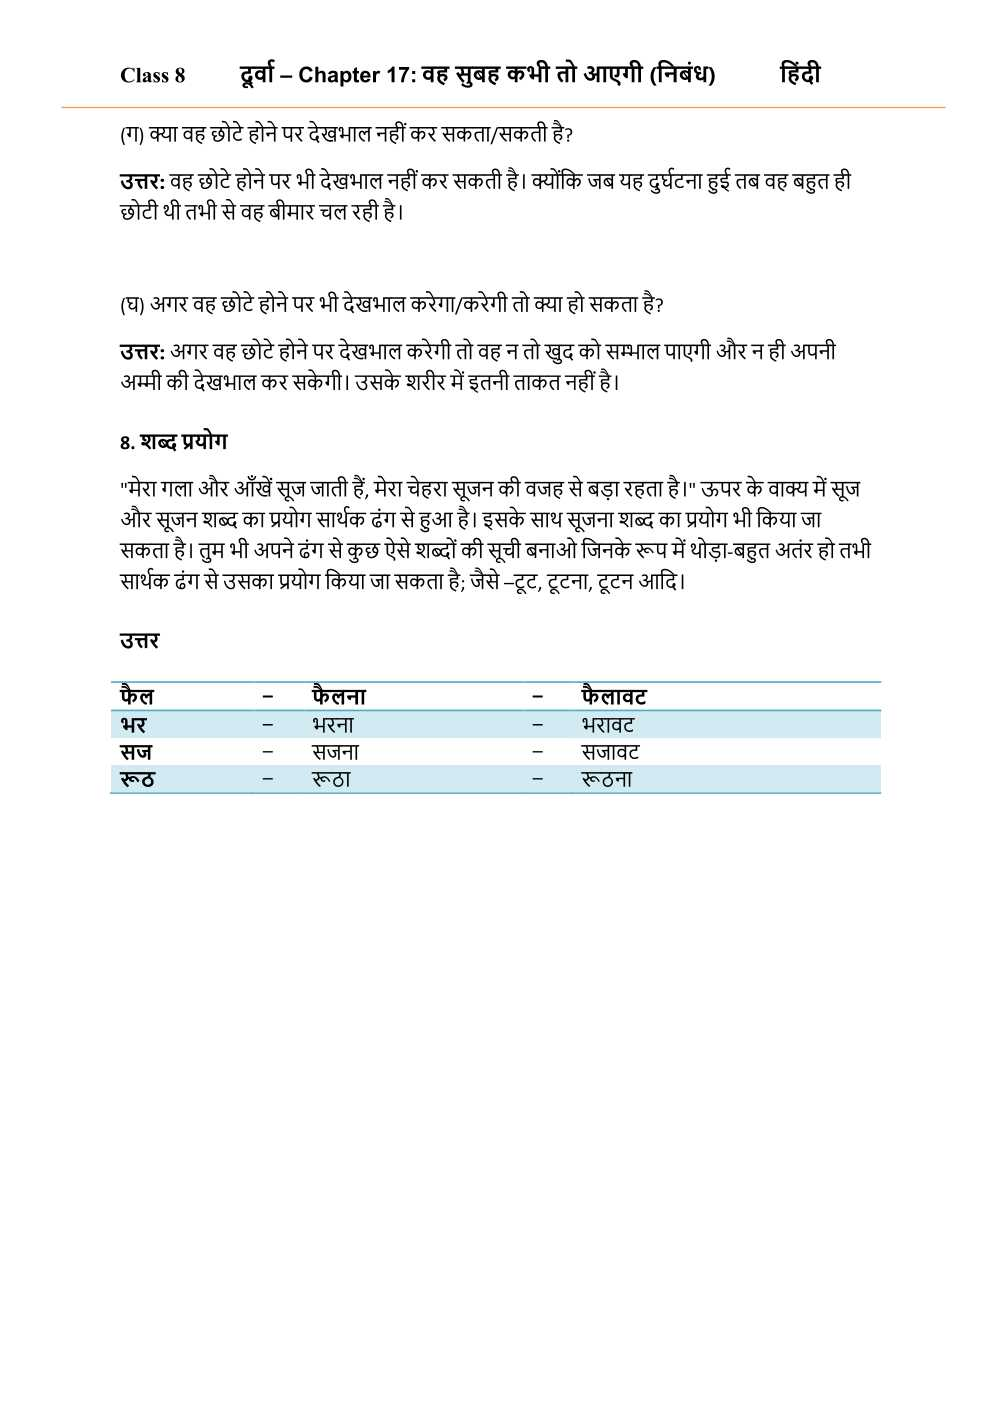 NCERT Solutions For Class 8 Hindi Durva Chapter 17